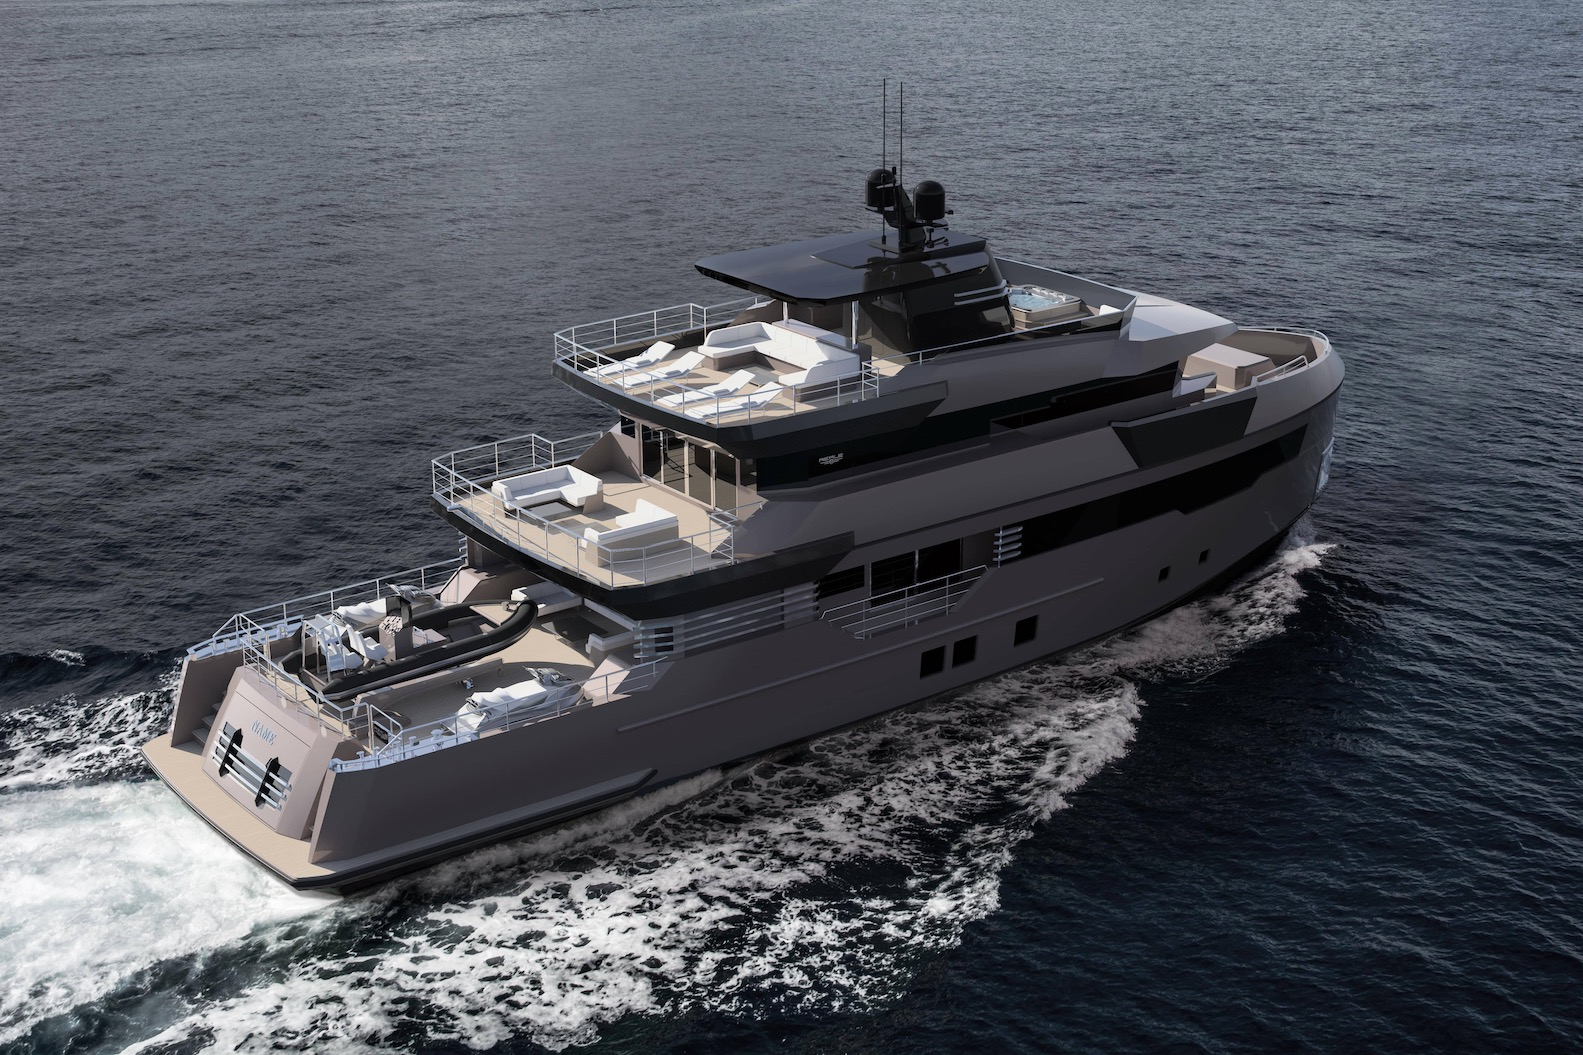 m/y pacifico 32 yacht for sale aerial view